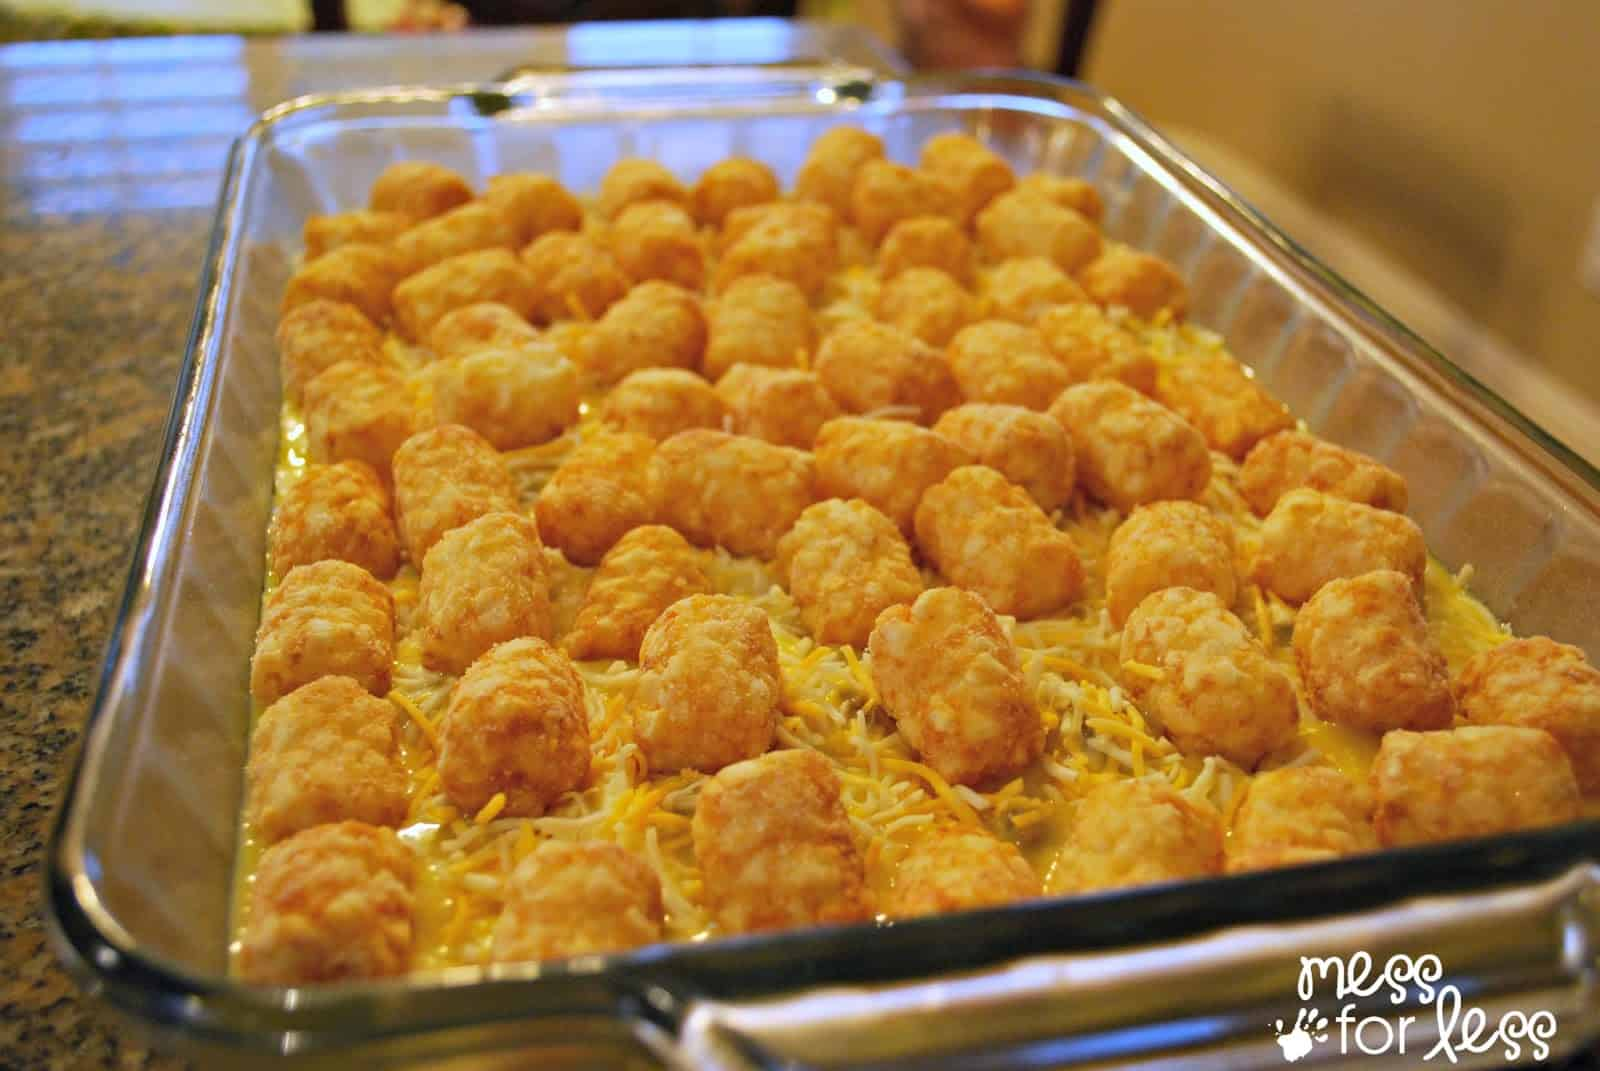 Tater tot casserole food fun friday mess for less tater tot casserole dish forumfinder Image collections